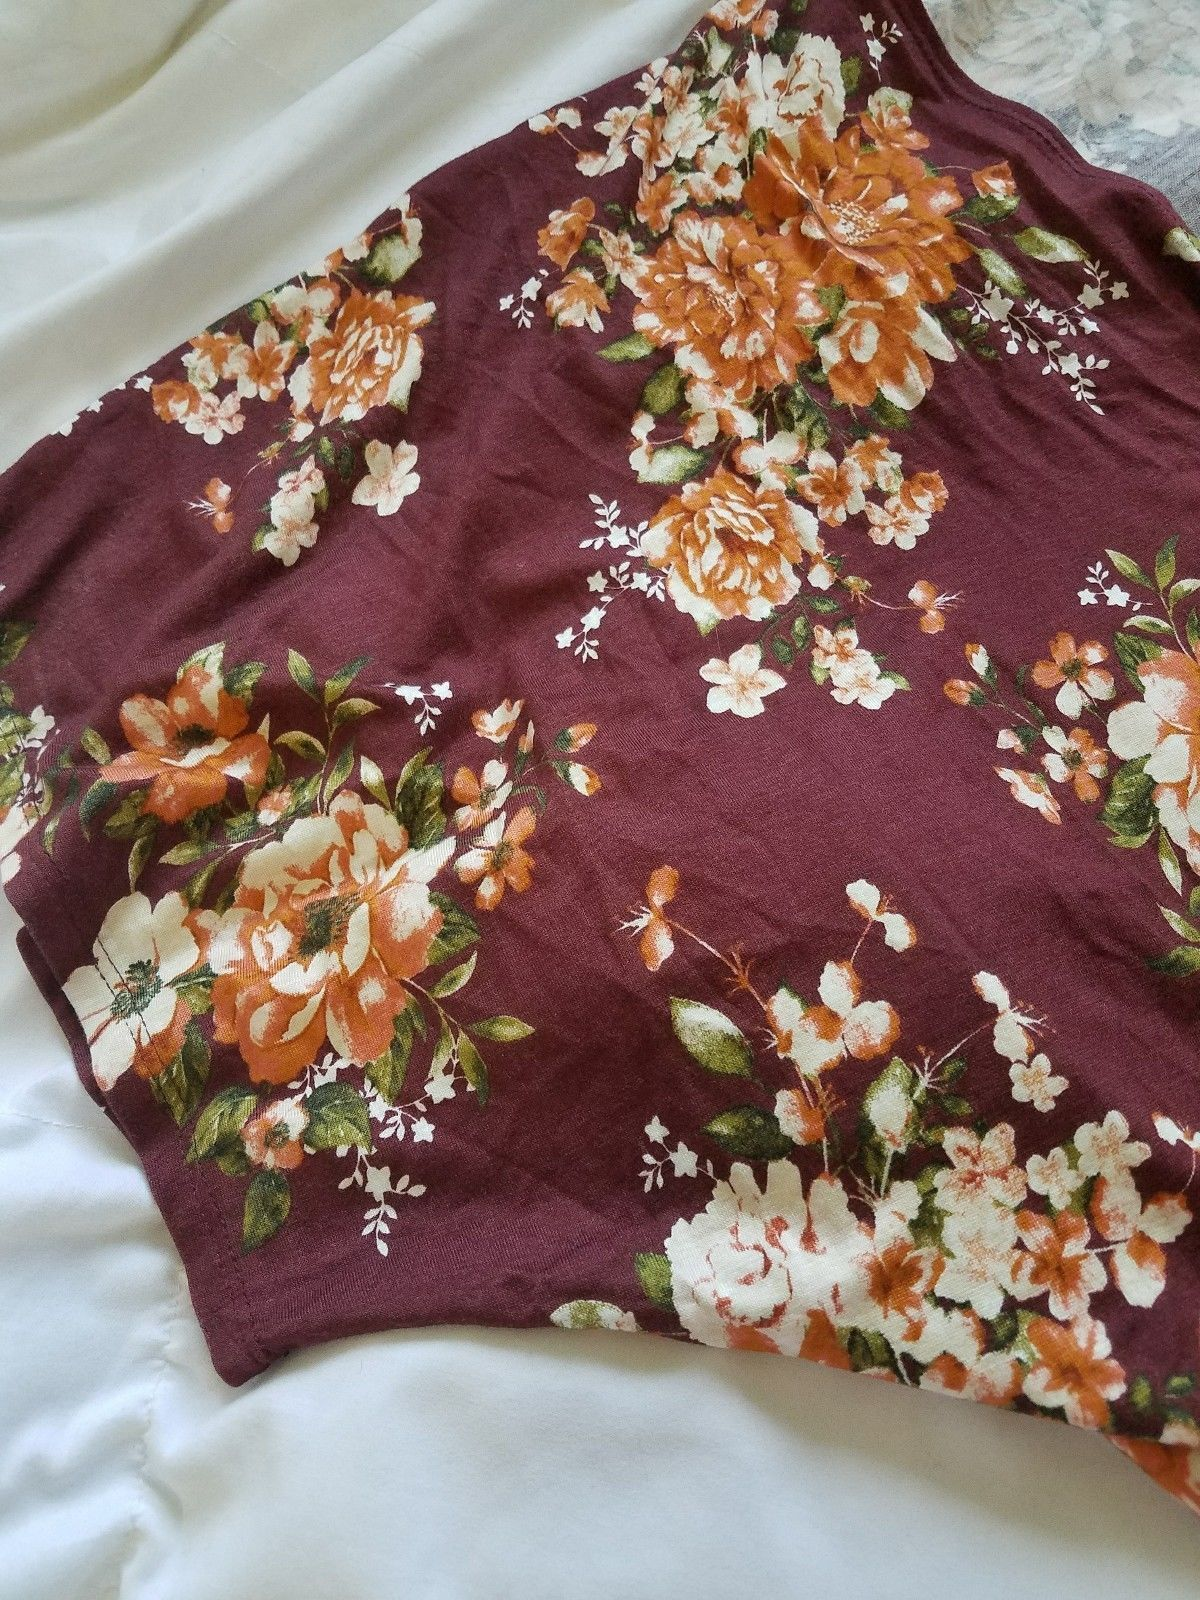 Shelly Floral Cardigan No Button Burgundy Orange Floral Short Sleeves Large New